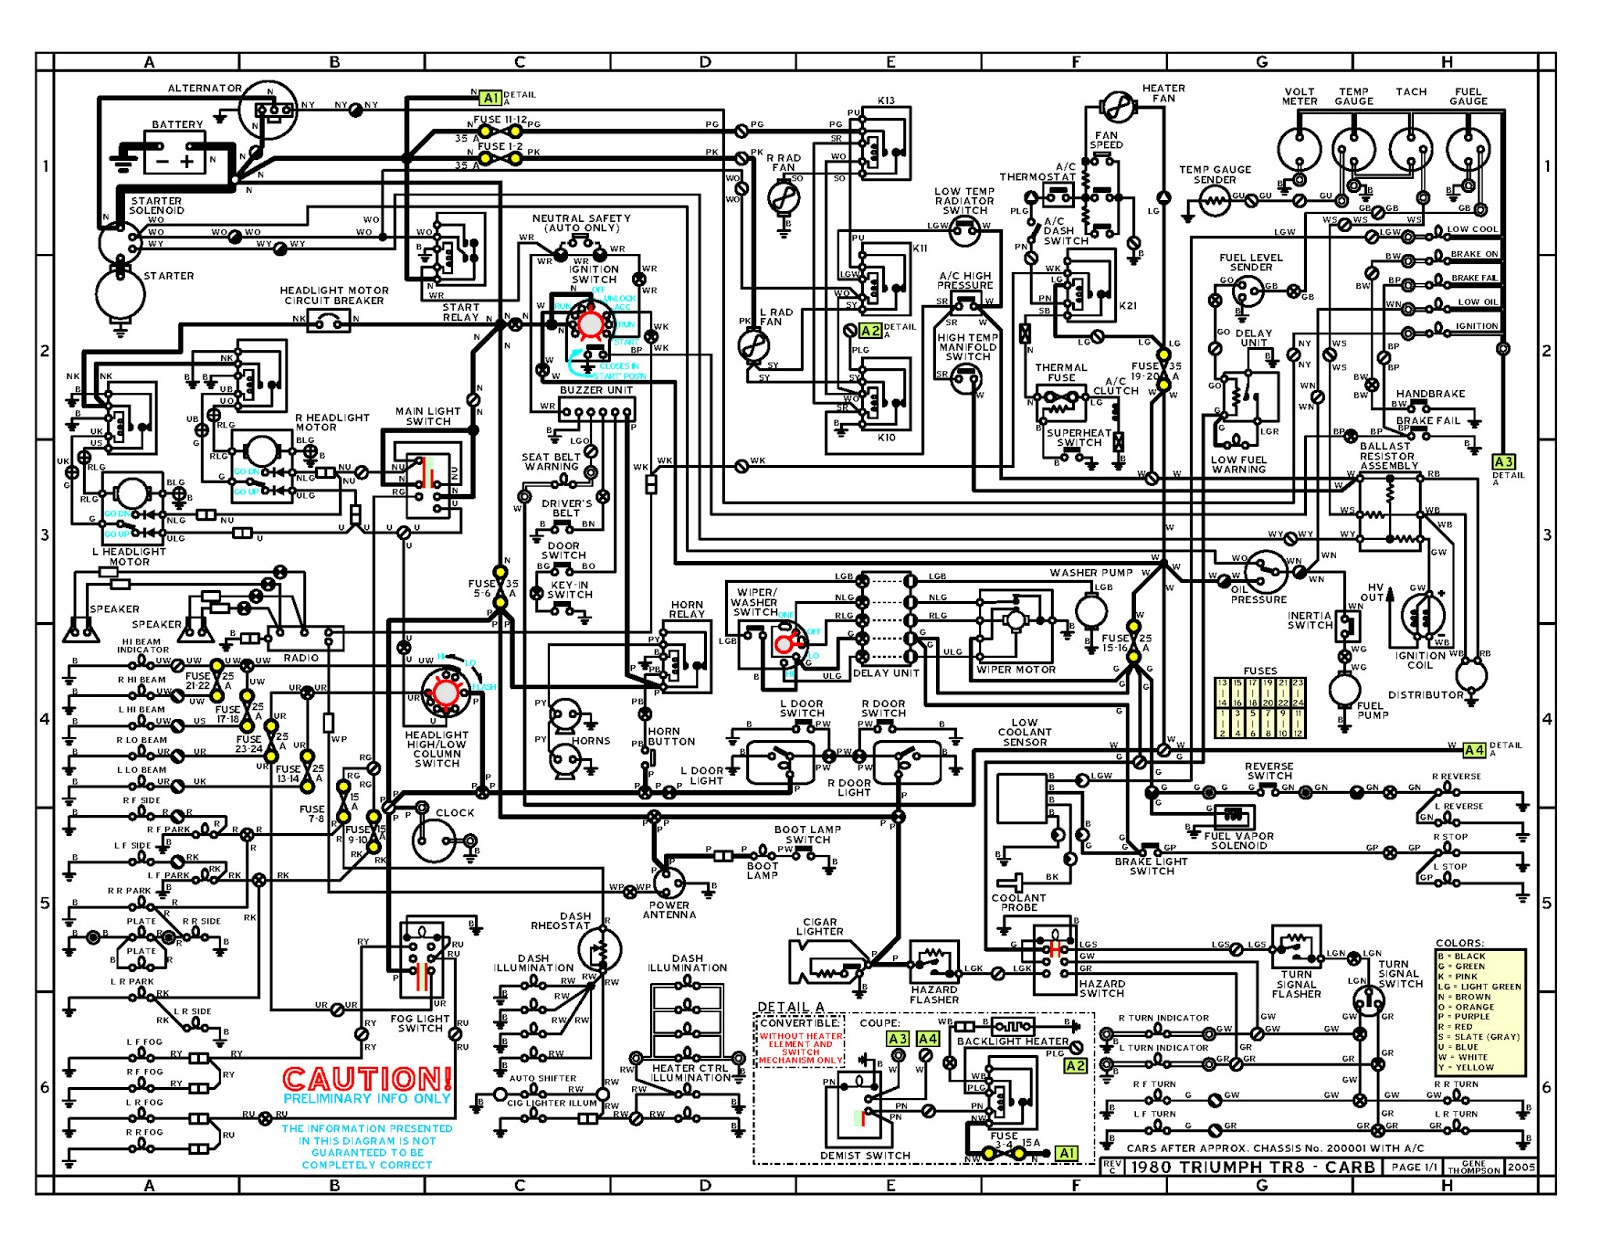 Diagram 1971 Tr6 Wiring Diagram Full Version Hd Quality Wiring Diagram Vhooiozx Fanfaradilegnano It